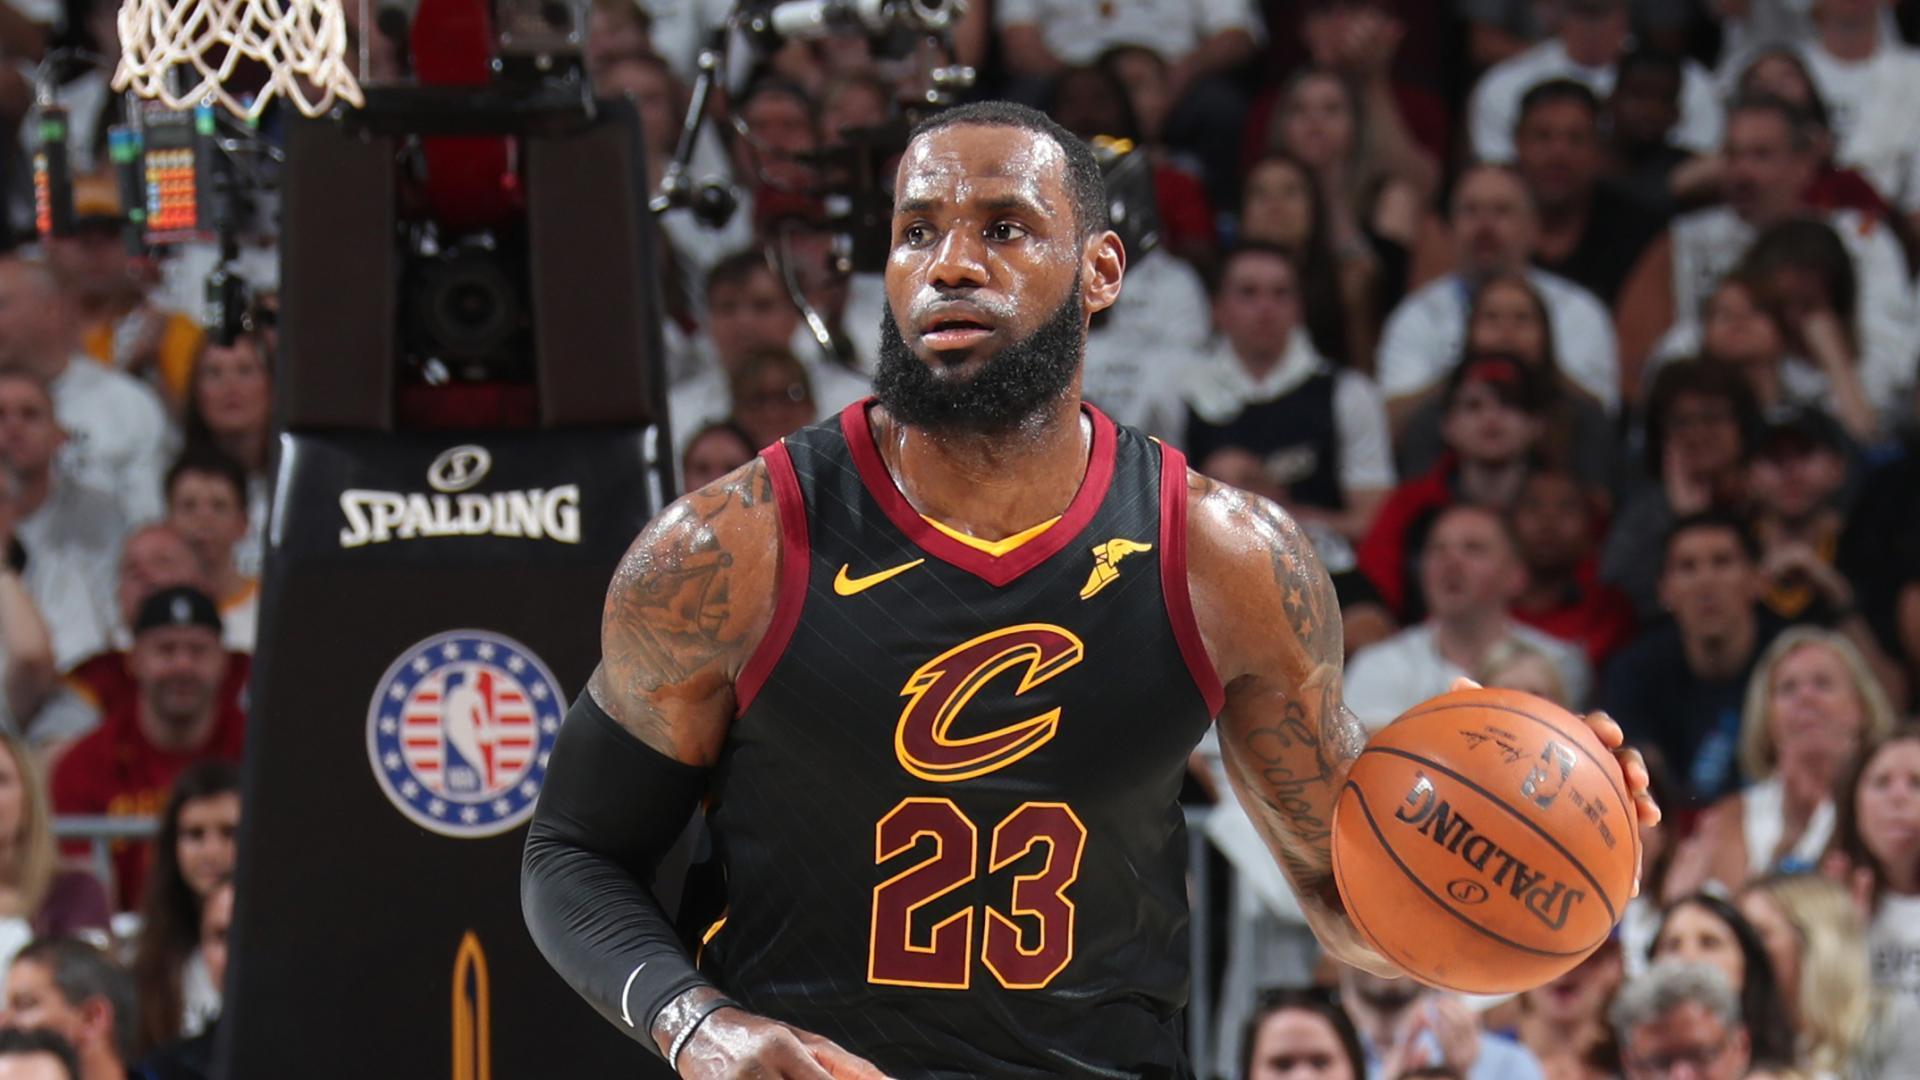 26.05.18 Move of the Night:LeBron James